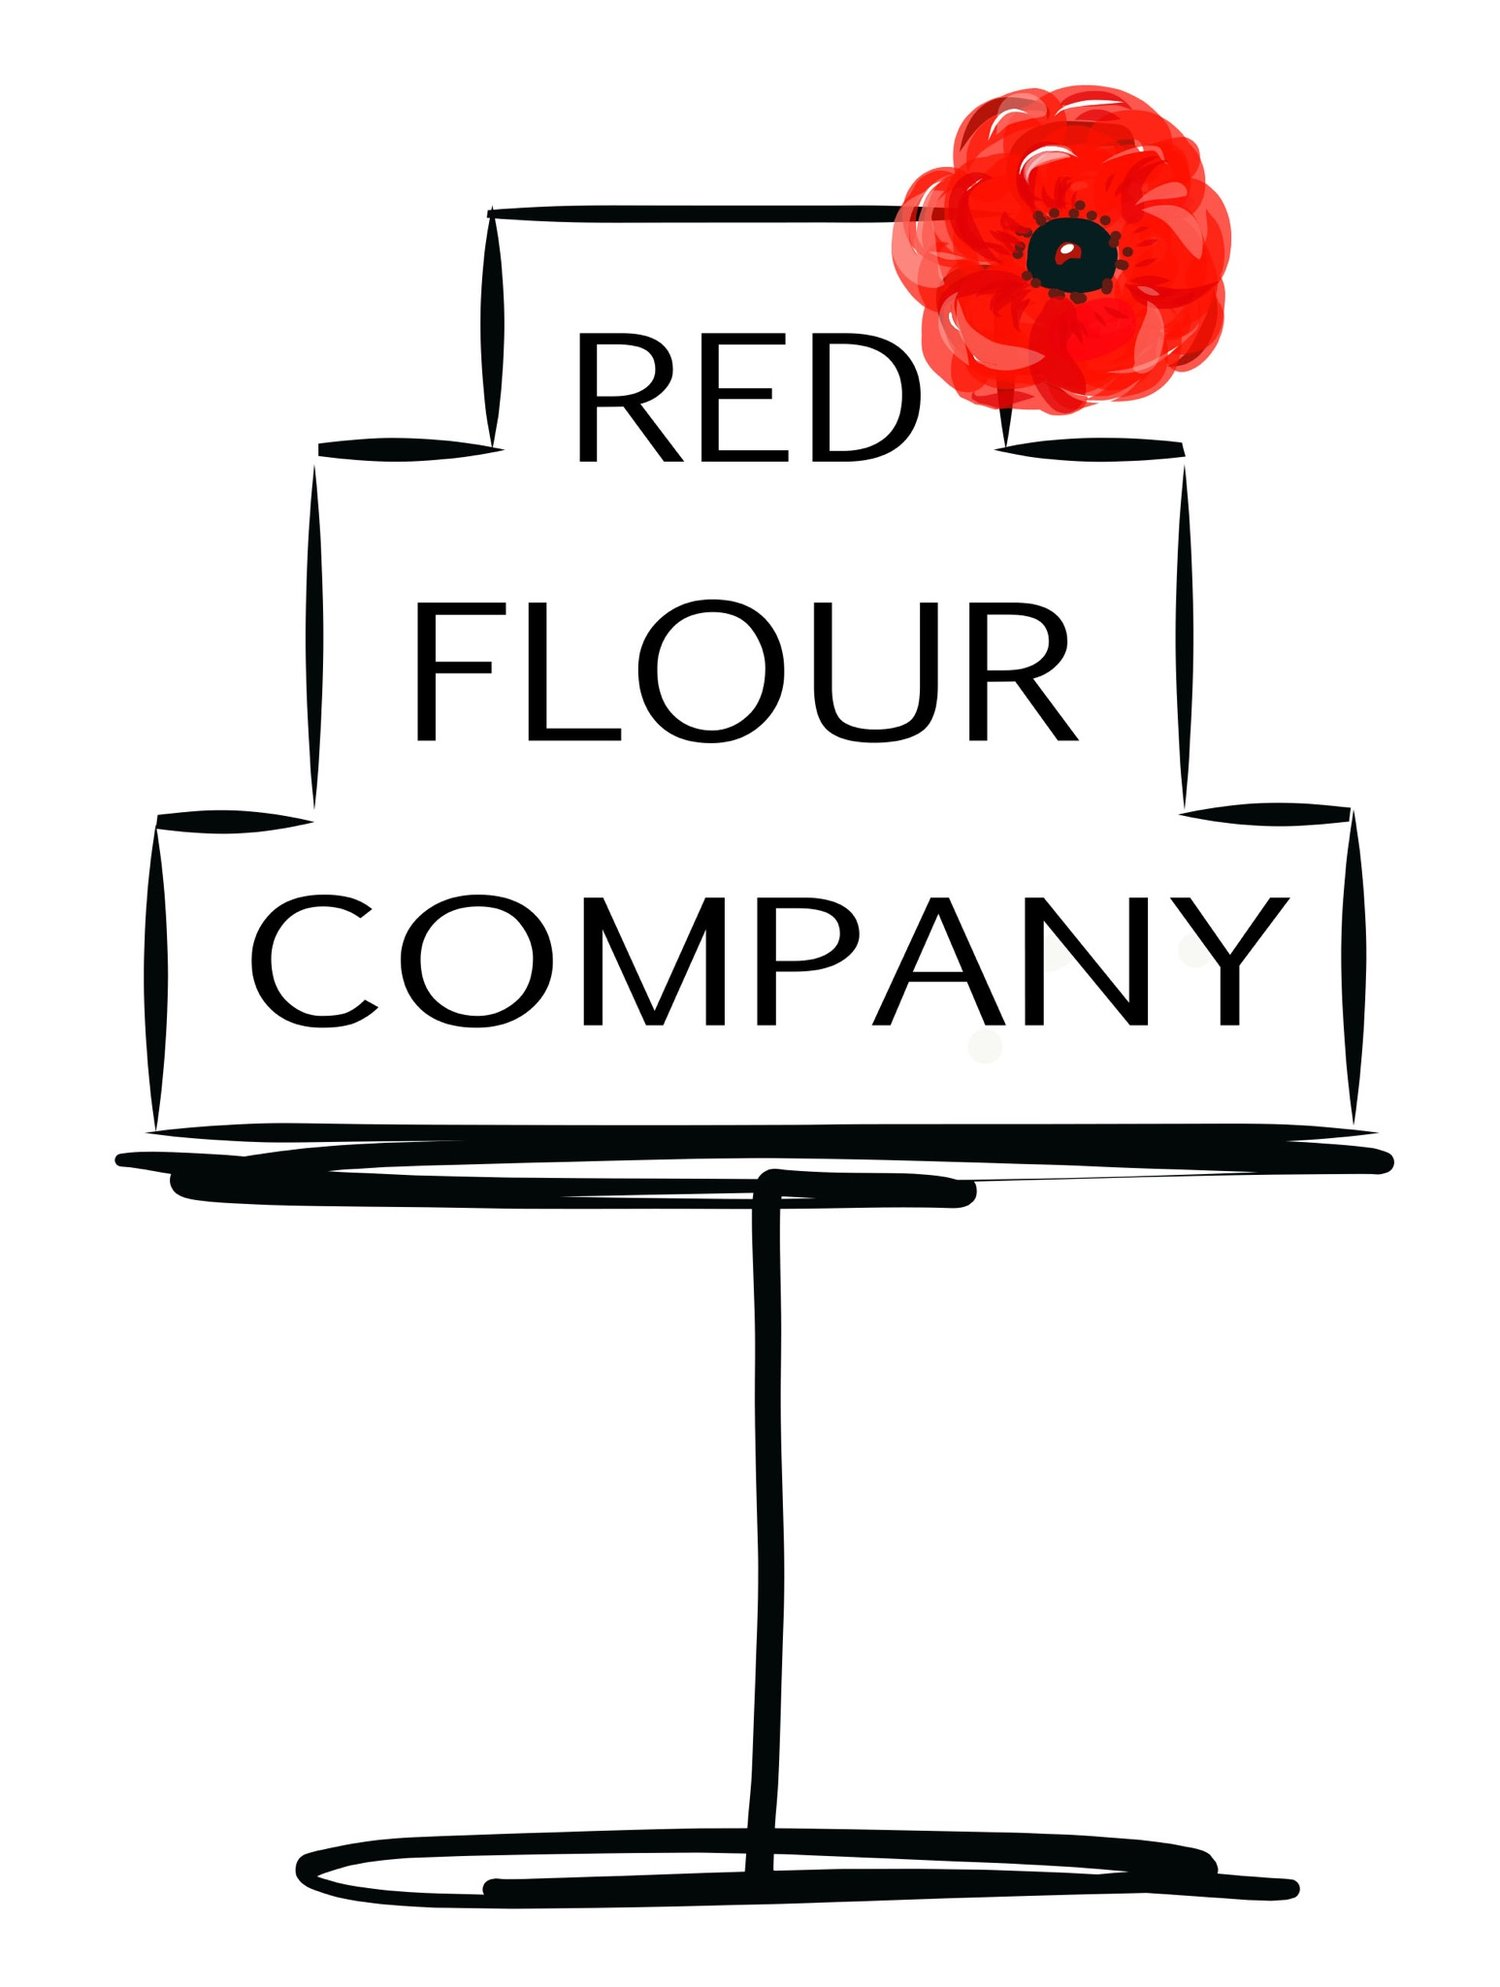 Red Flour Company